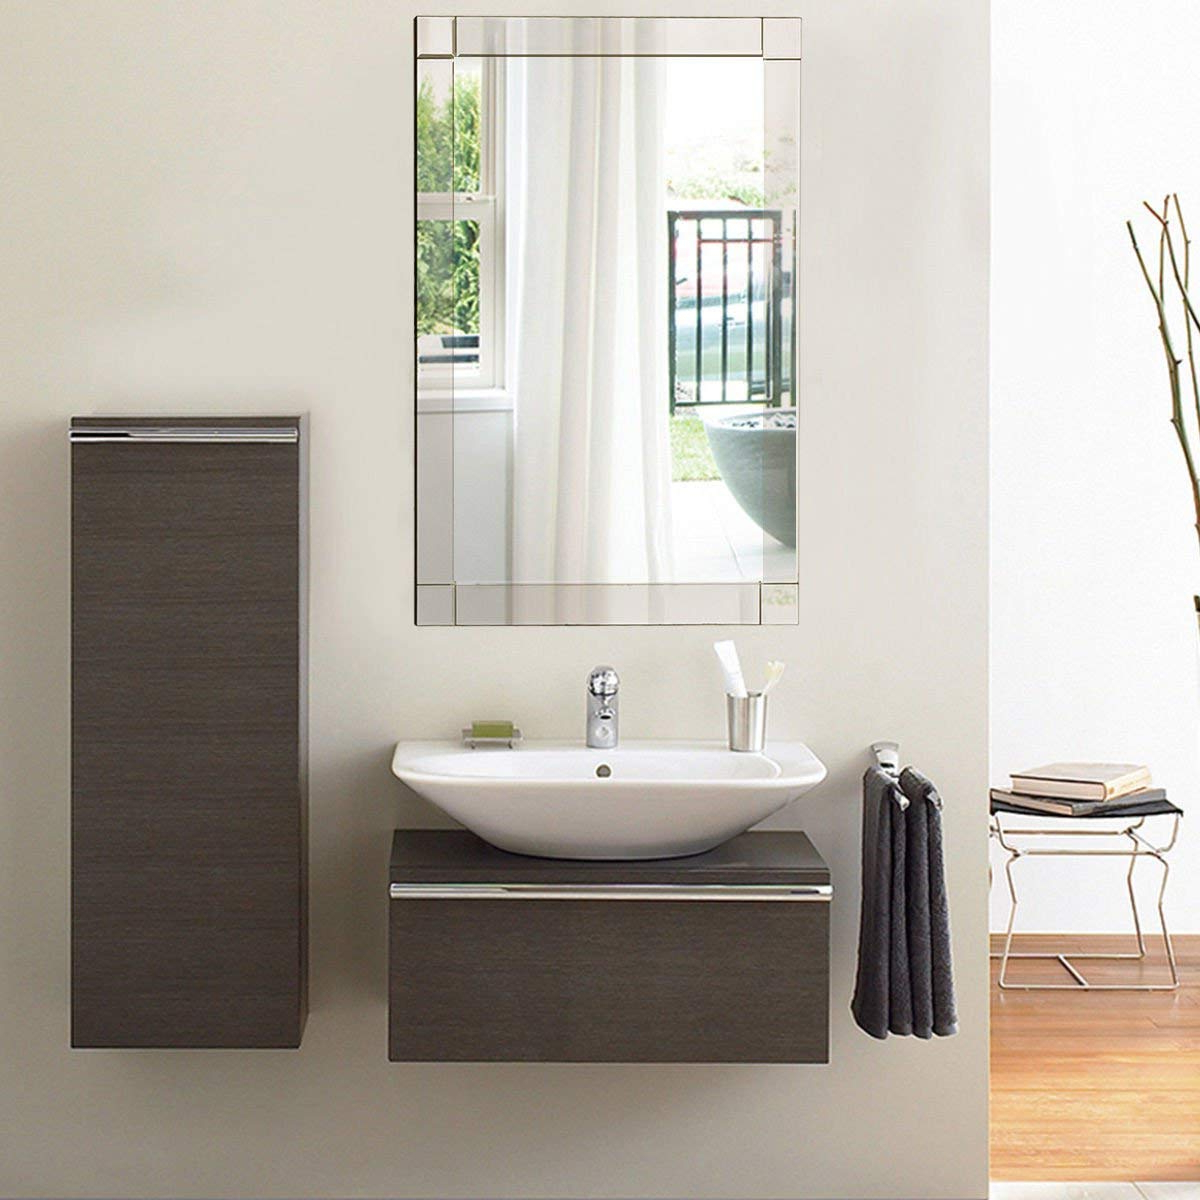 Most Recently Released Tangkula Wall Mirror Vanity Mirror Home Bathroom Office Bedroom Frameless Hanged Rectangle Make Up Mirror (wall Mounted Rectangular) In Eriq Framed Wall Mirrors (View 12 of 20)